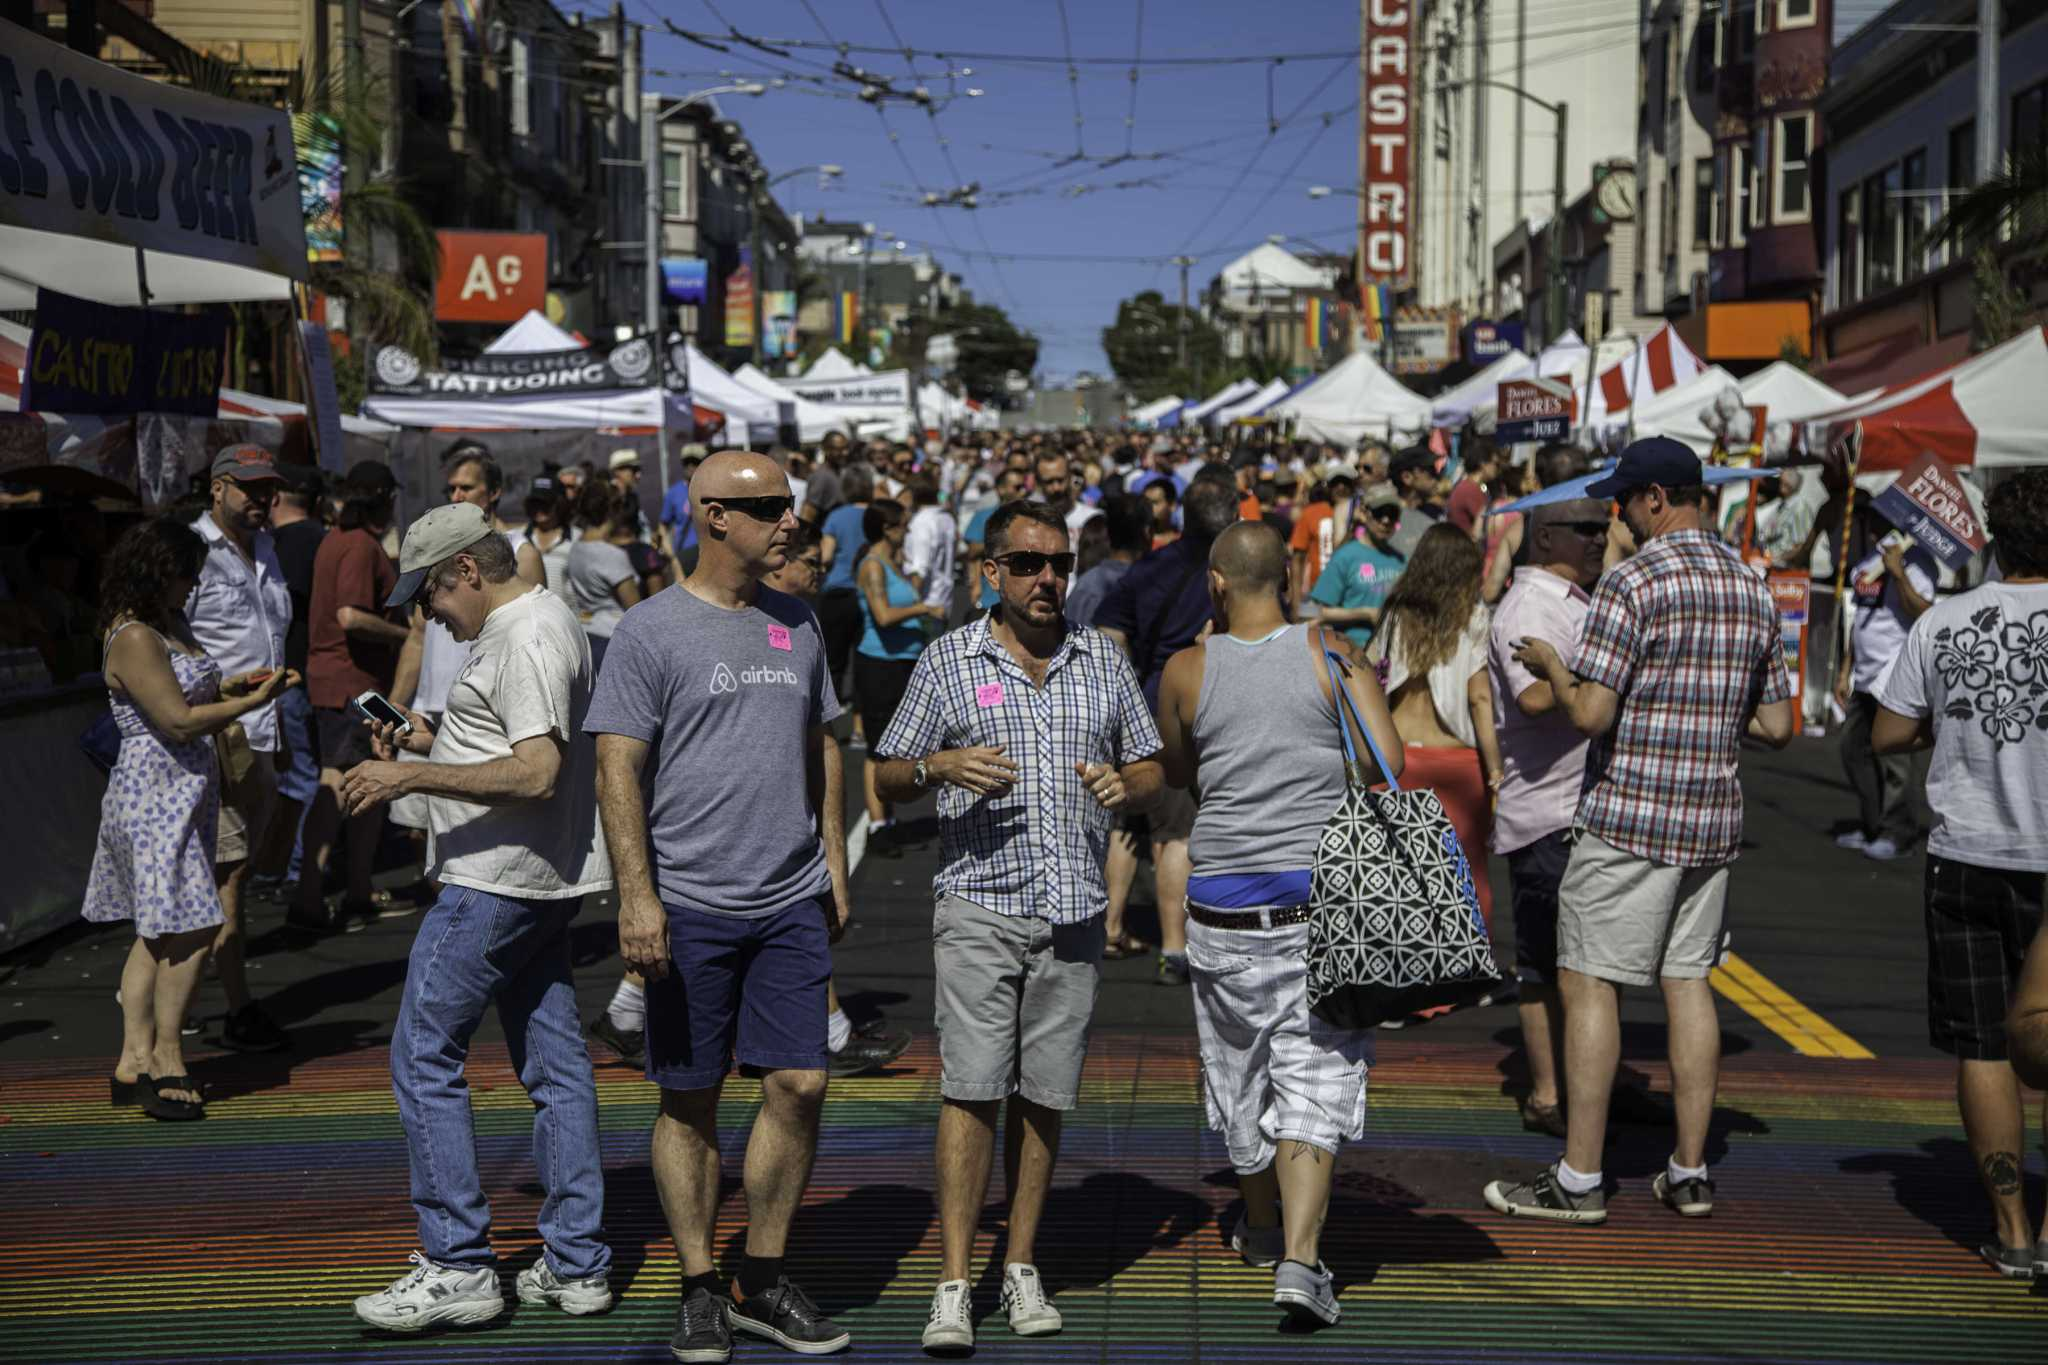 Castro's new look is both opposed and welcomed at annual street fair